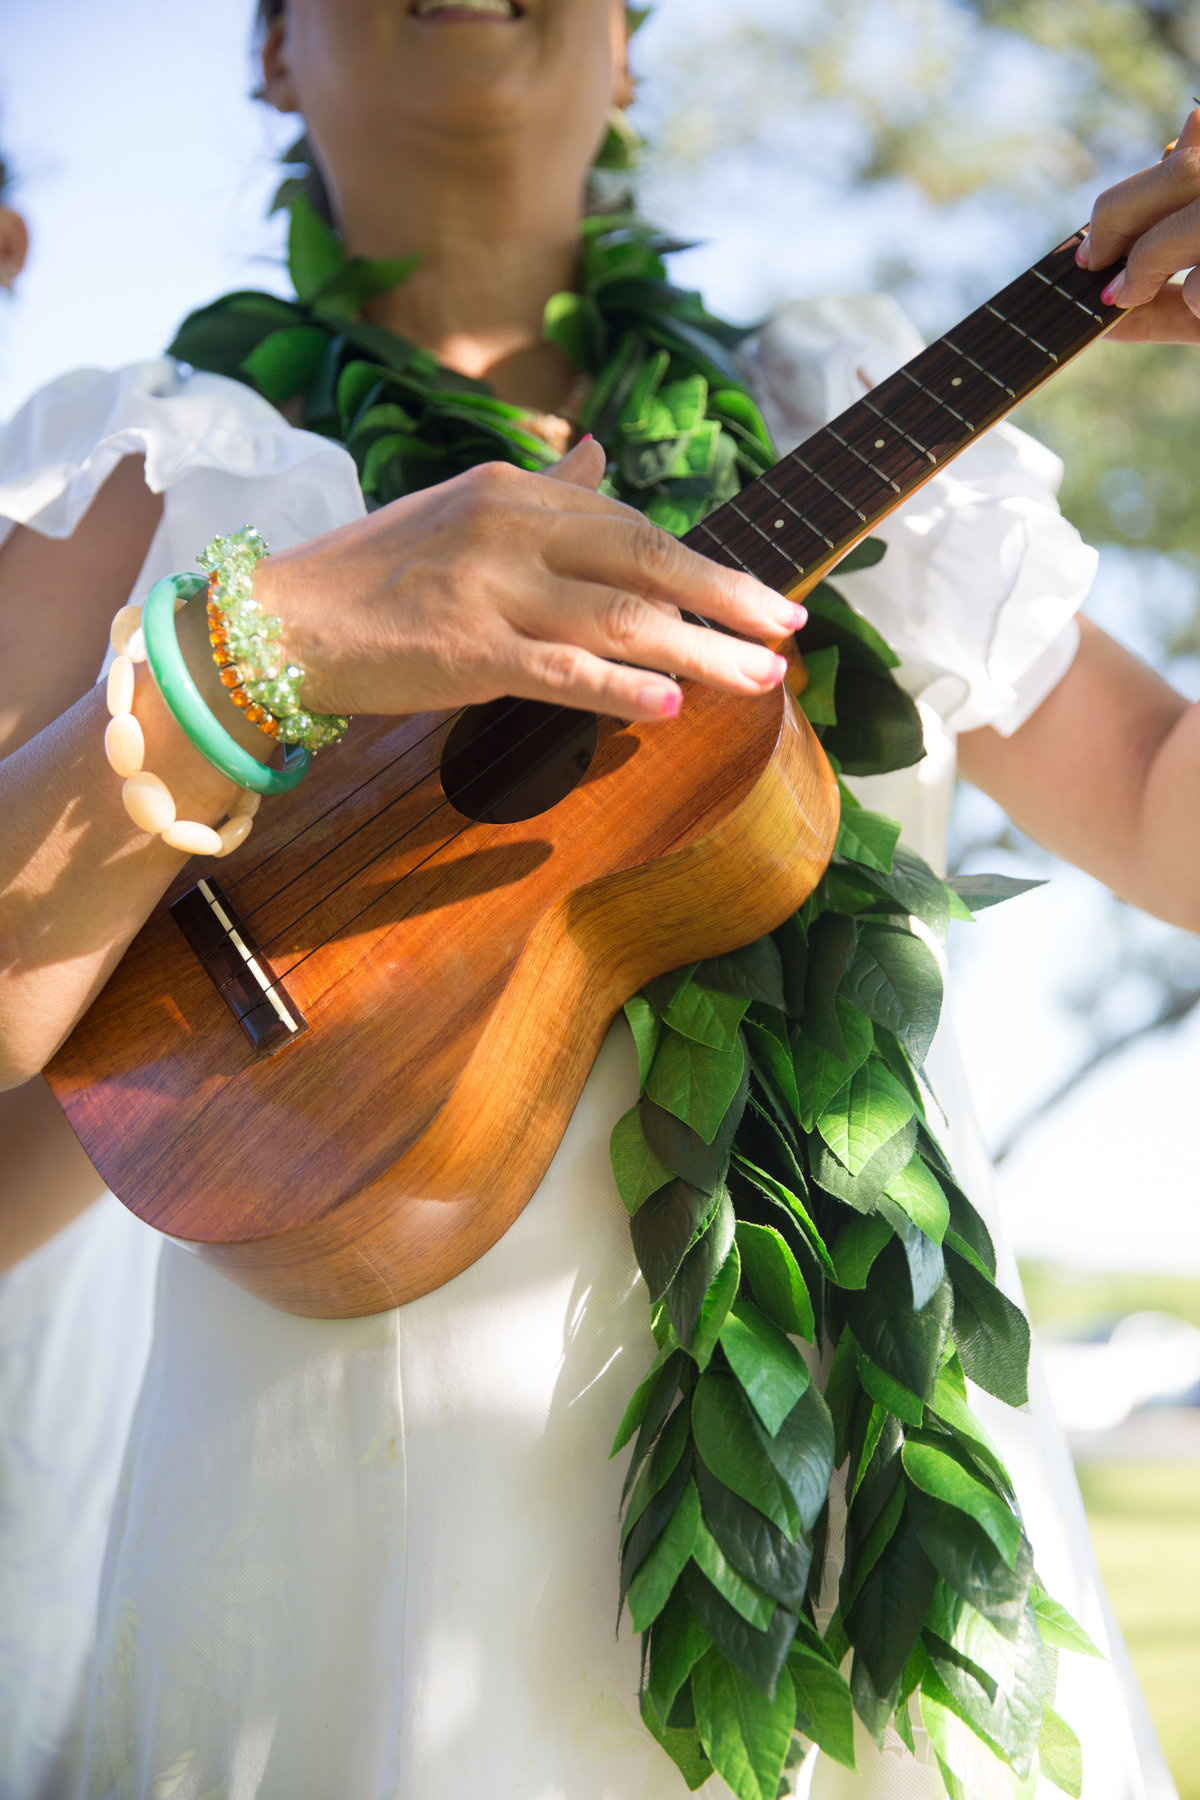 River Rock Event Center Texas  Ceremony Music Hawaiian Music Ukelele Maile Lei